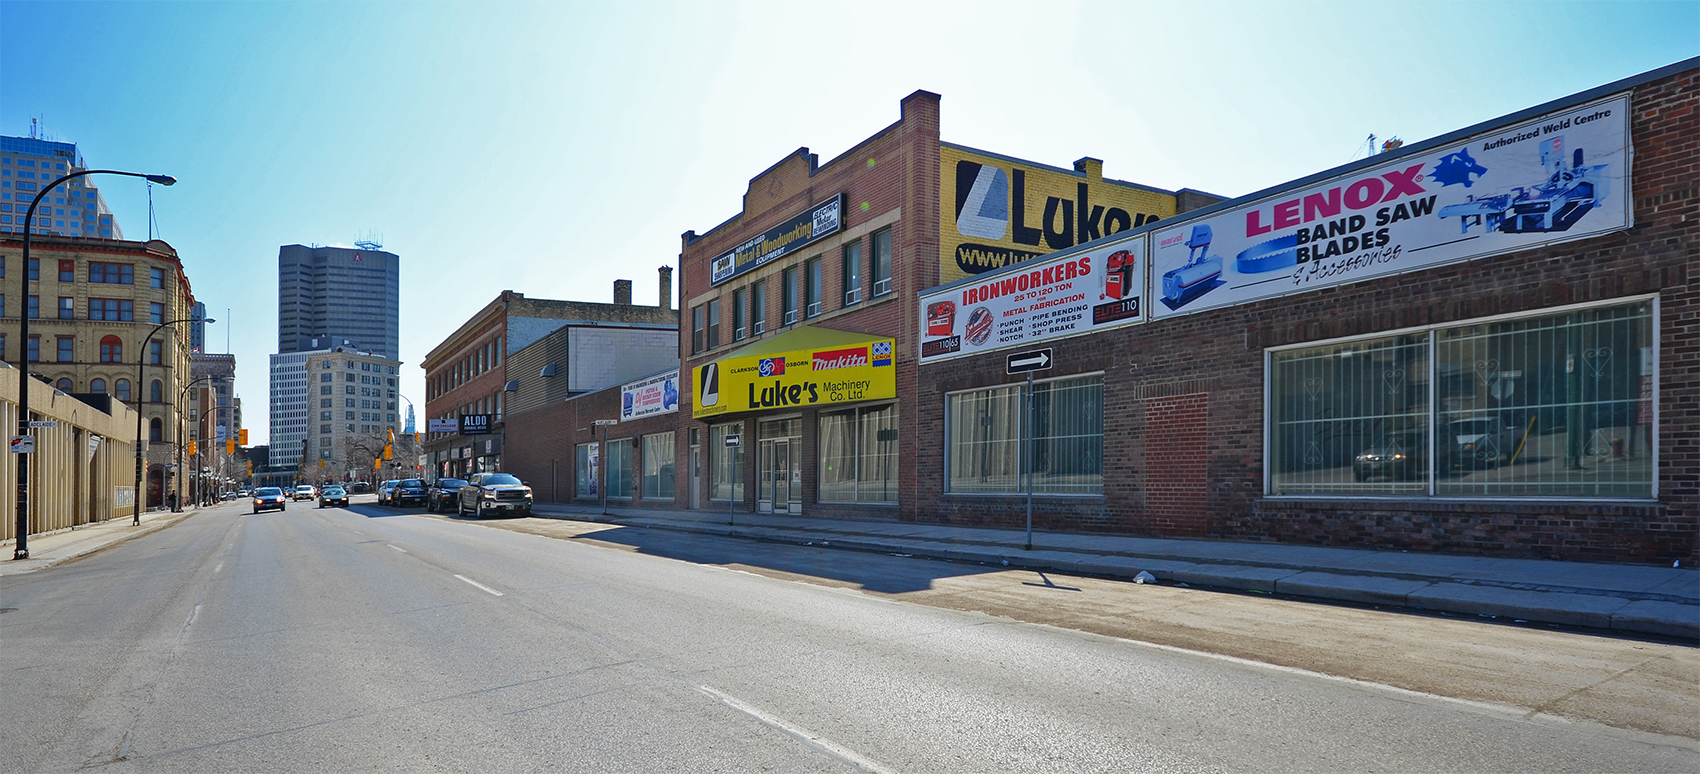 Luke's Machinery Co. an icon on Winnipeg's Main Street strip and a project of Number TEN's architects.